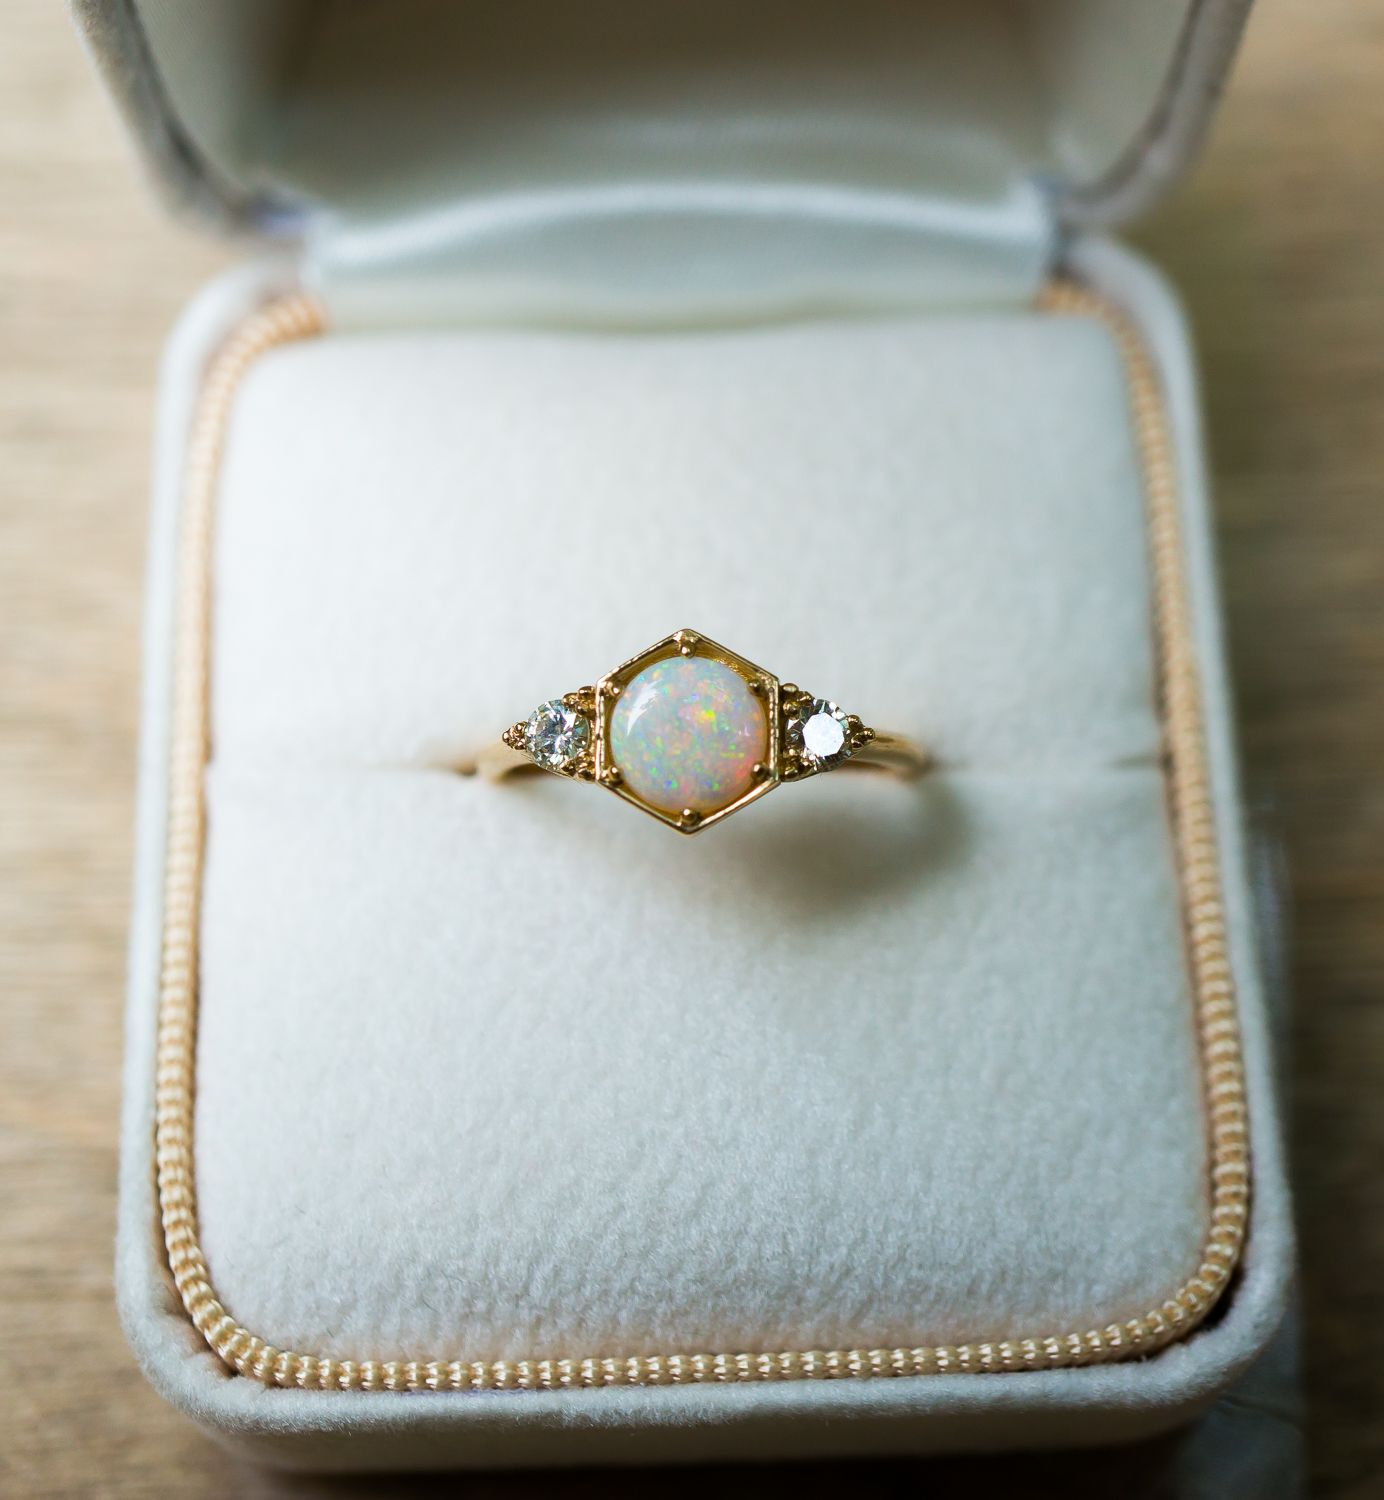 A Bespoke Opal Engagement Ring By S Kind & Co With Vintage Diamonds And